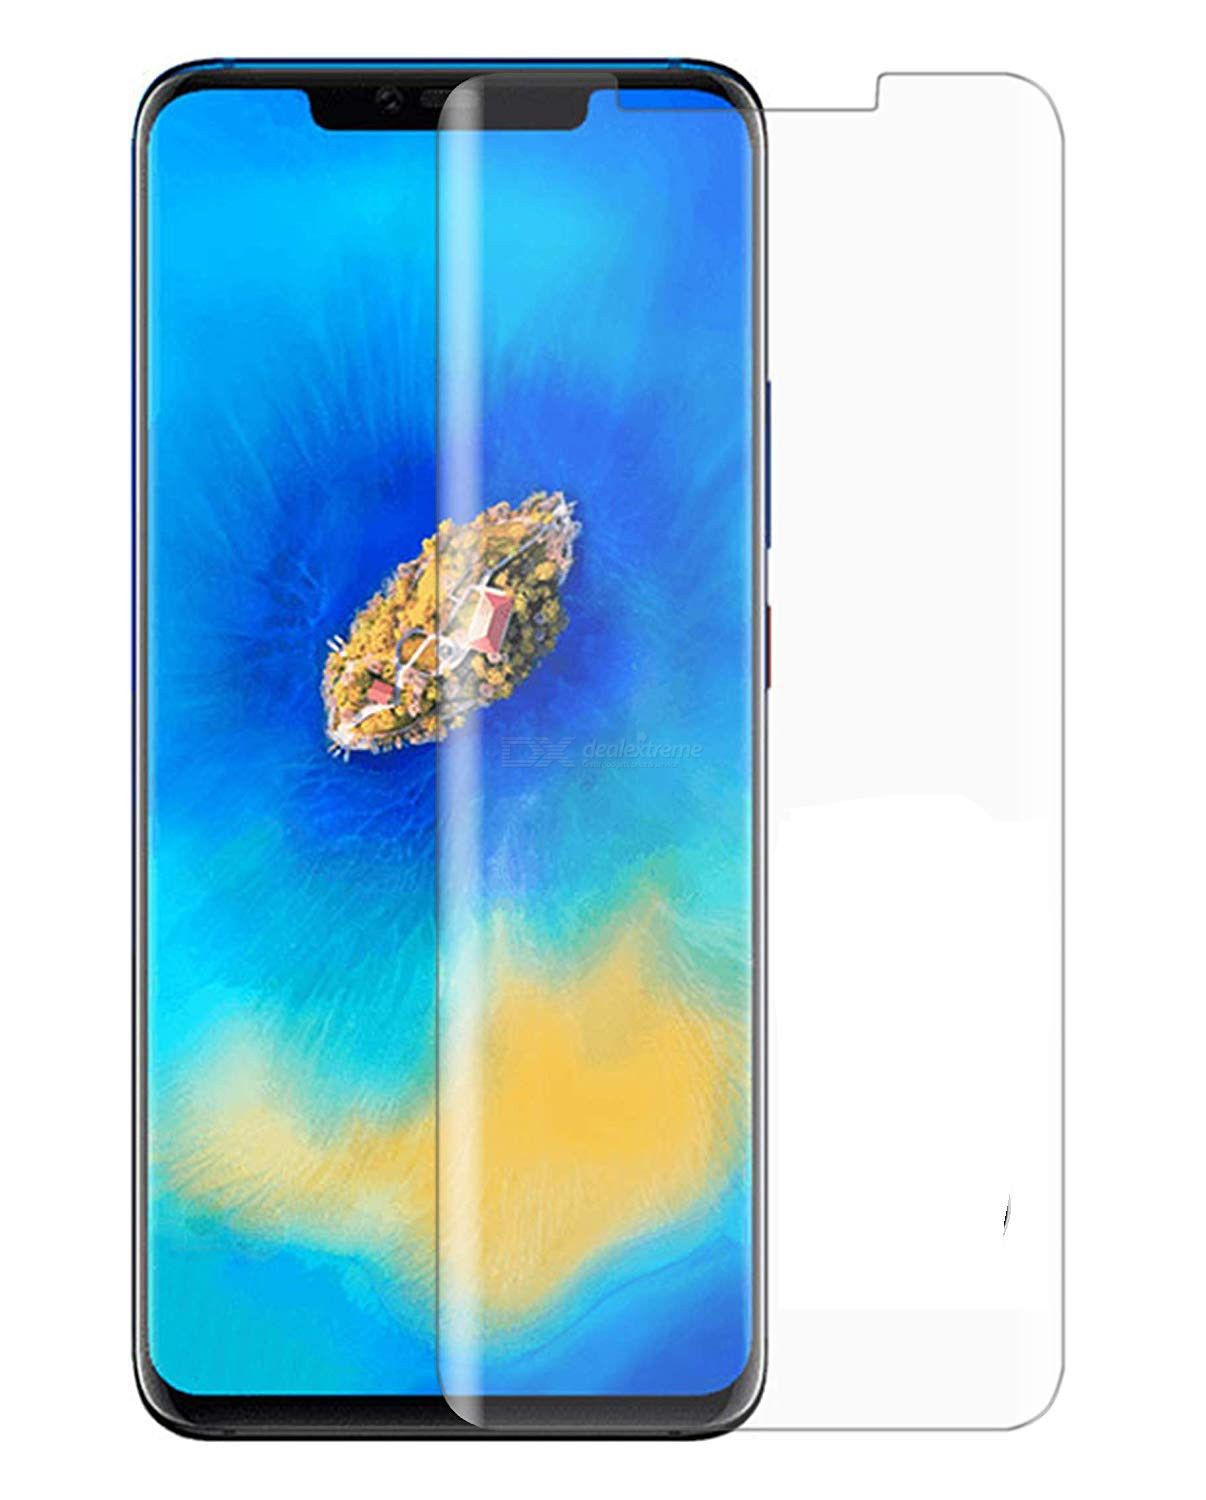 Tempered Glass Screen Protector 3D 9H Full Coverage Tempered Glass Protection Film for Huawei Mate 20 Pro – 2 Pack